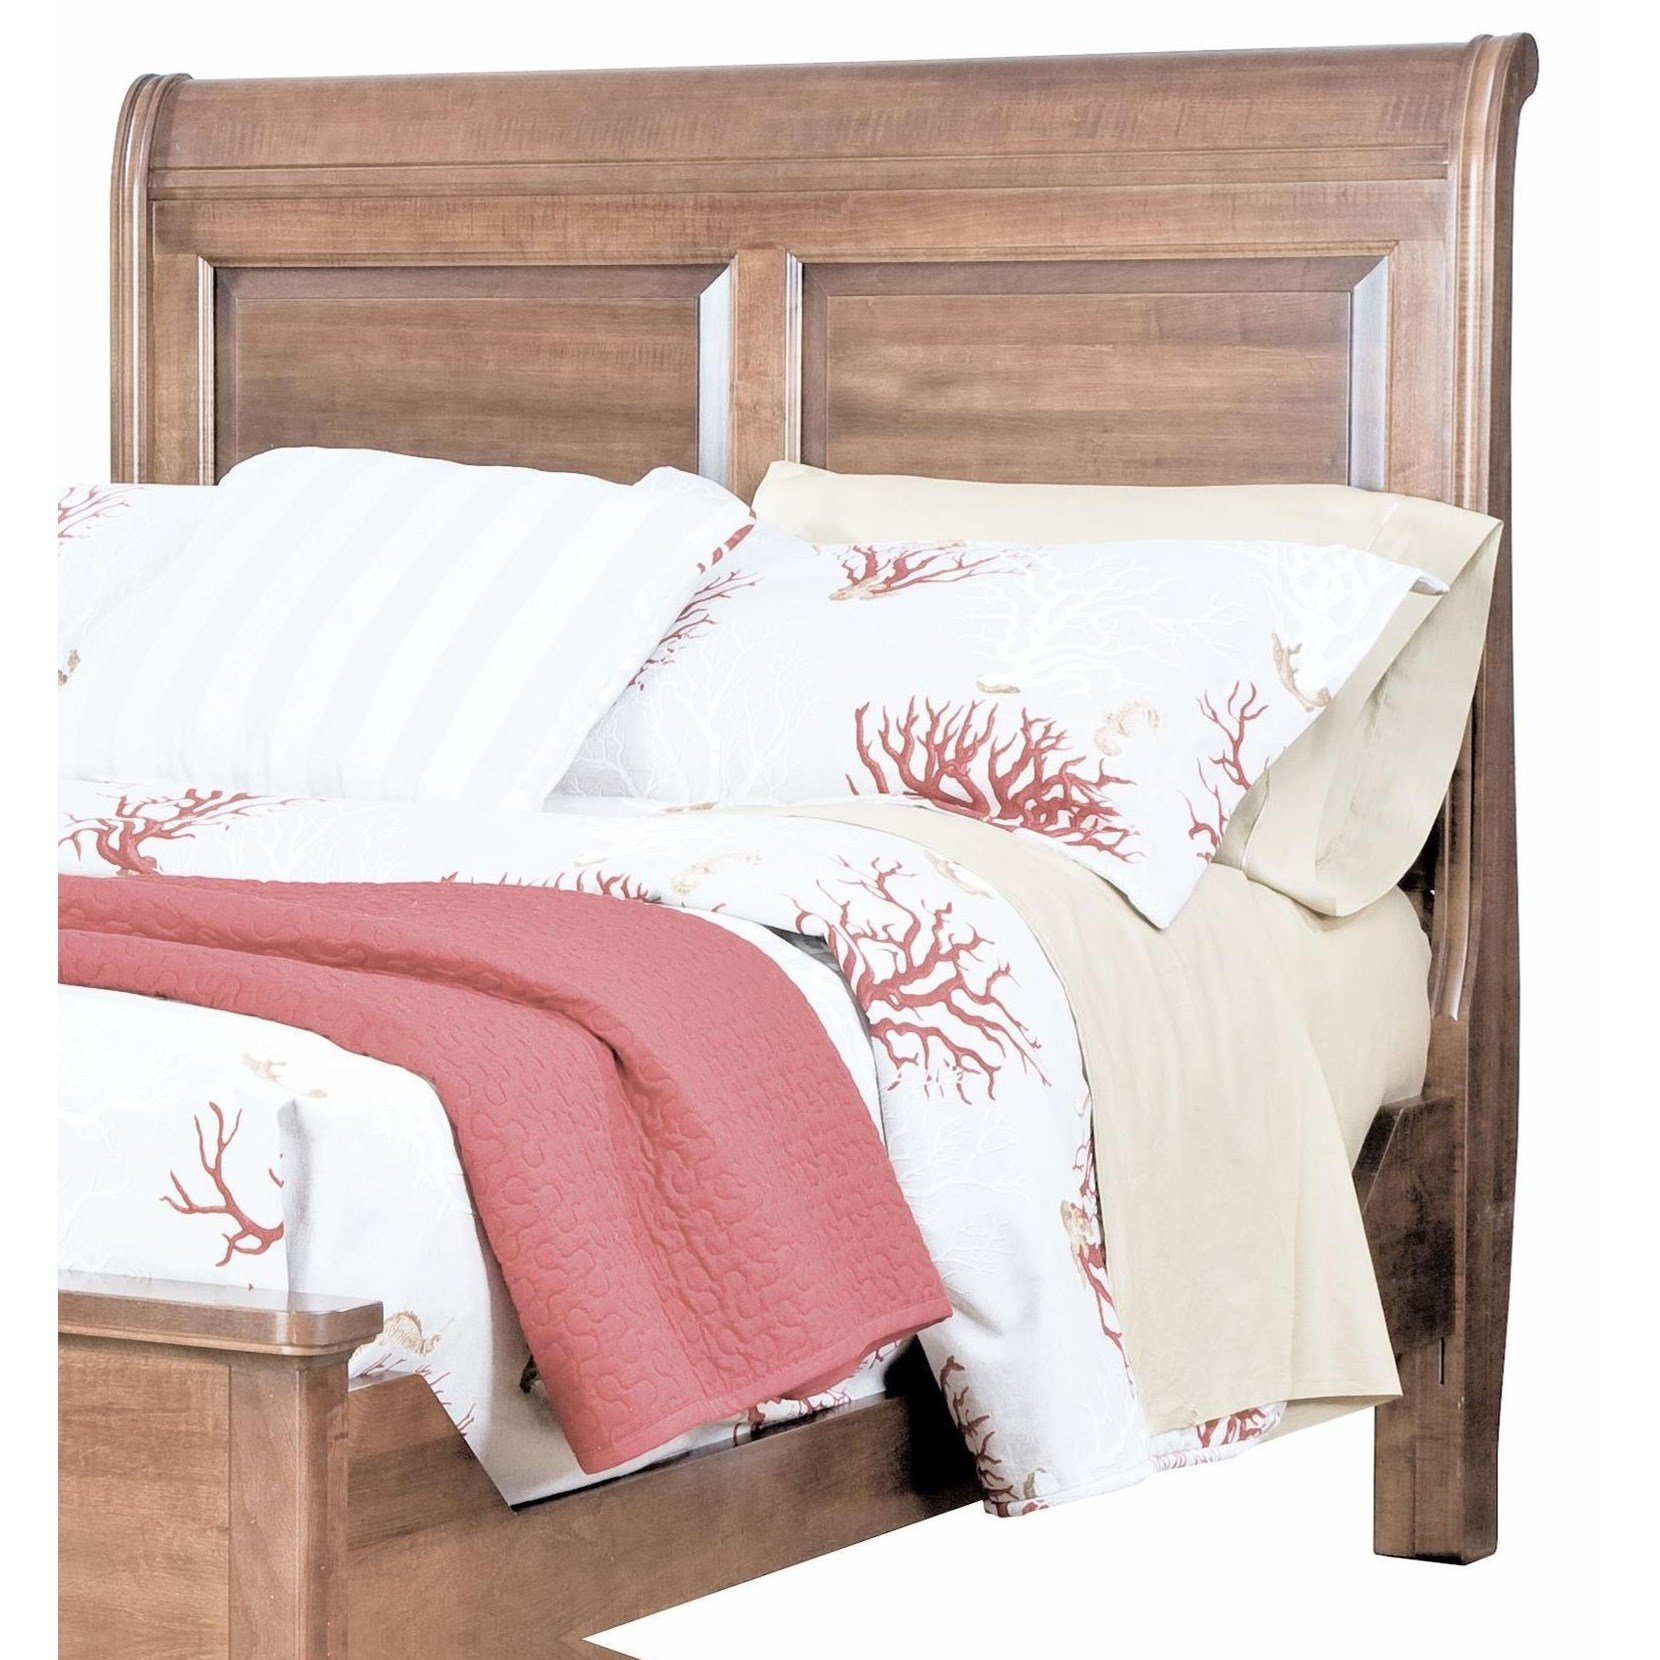 Beds King Sleigh Headboard by perfectbalance by Durham Furniture at Stoney Creek Furniture